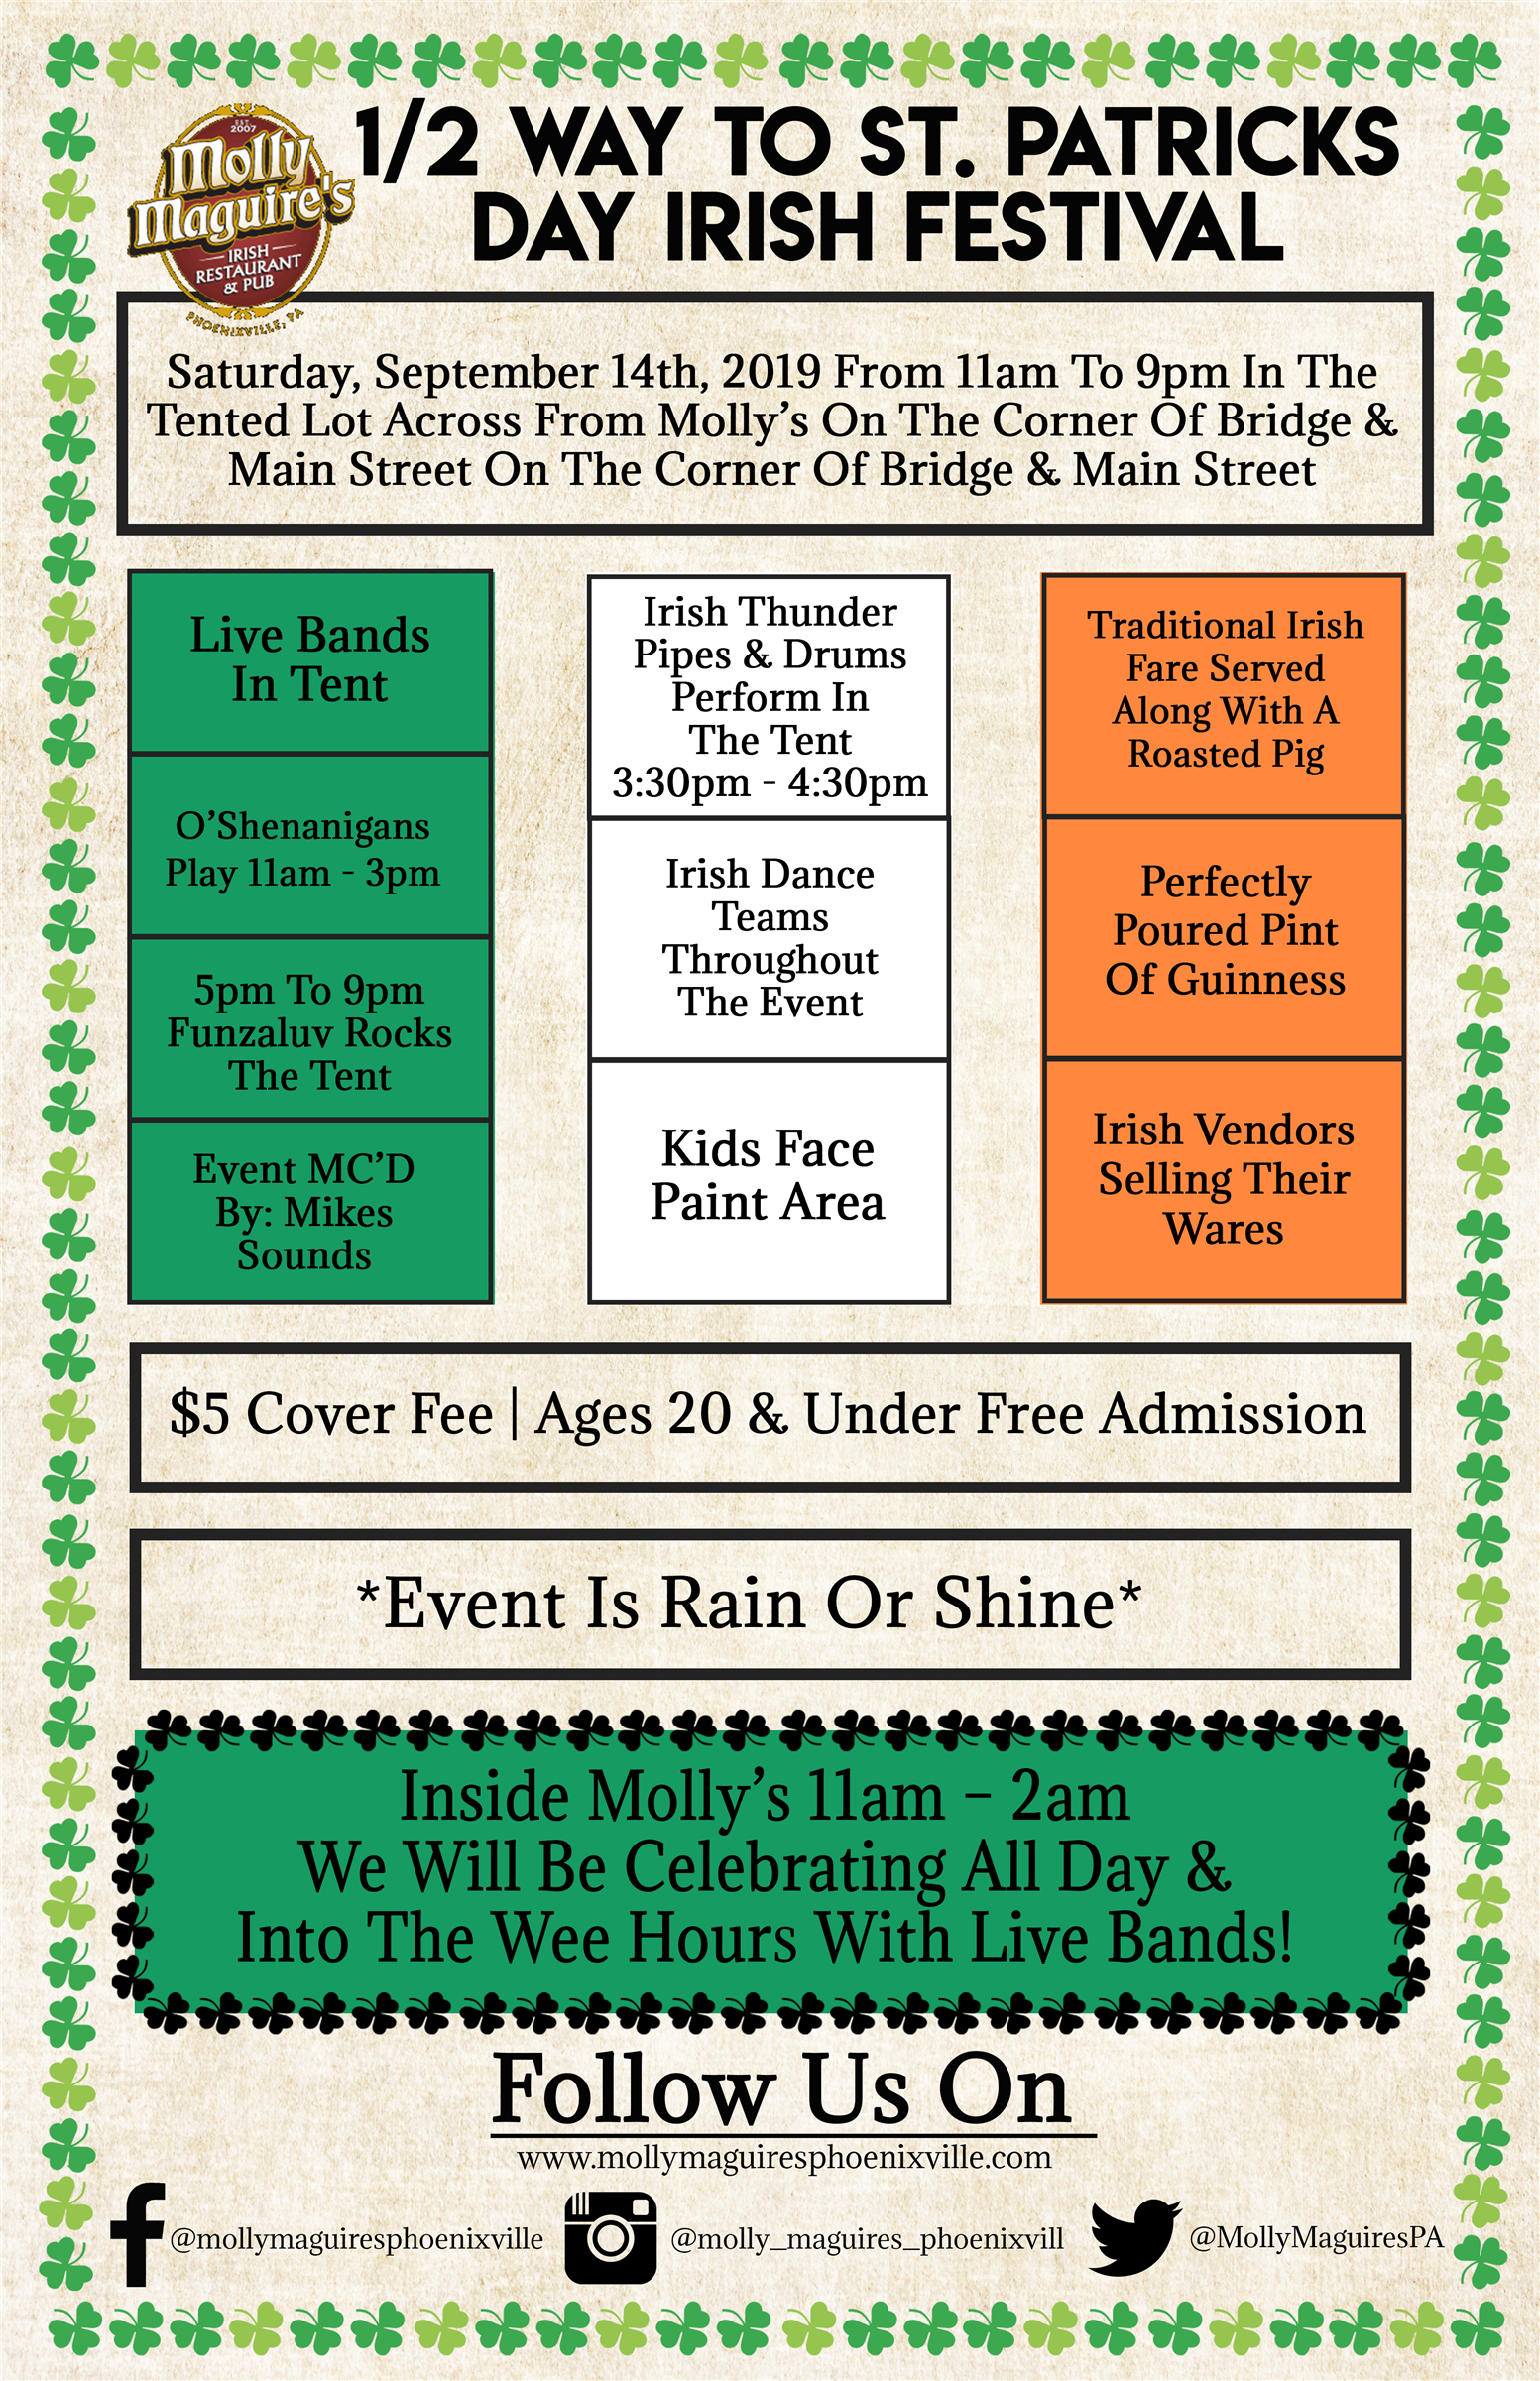 1/2 Way To St. Patricks Day Irish Festival. Saturday, September 14th, 2019 From 11am To 9pm In The Tented Lot Across From Molly's On The Corner Of Bridge & Main Street On The Corner Of Bridge & Main Street. Live Bands In Tent, O'shenanigans Play 11am - 3pm, 5pm To 9pm Funzaluv Rocks The Tent, Event Mc'd  By: Mikes Sounds. Irish Thunder Pipes & Drums Perform In The Tent 3:30pm - 4:30pm, Irish Dance Teams Throughout  The Event, Kids Face Paint Area. Traditional Irish Fare Served Along With A Roasted Pig, Perfectly Poured Pint Of Guinness, Irish Vendors Selling Their Wares. $5 Cover Fee   Ages 20 & Under Free Admission. Event Is Rain Or Shine. Inside Molly's 11am – 2am  We Will Be Celebrating All Day &  Into The Wee Hours With Live Bands!Follow Us On: Www.Mollymaguiresphoenixville.Com, Facebook Logo @Mollymaguiresphoenixville, Instagram Logo @Molly_Maguires_Phoenixville, Twitter Logo @Mollymaguirespa.